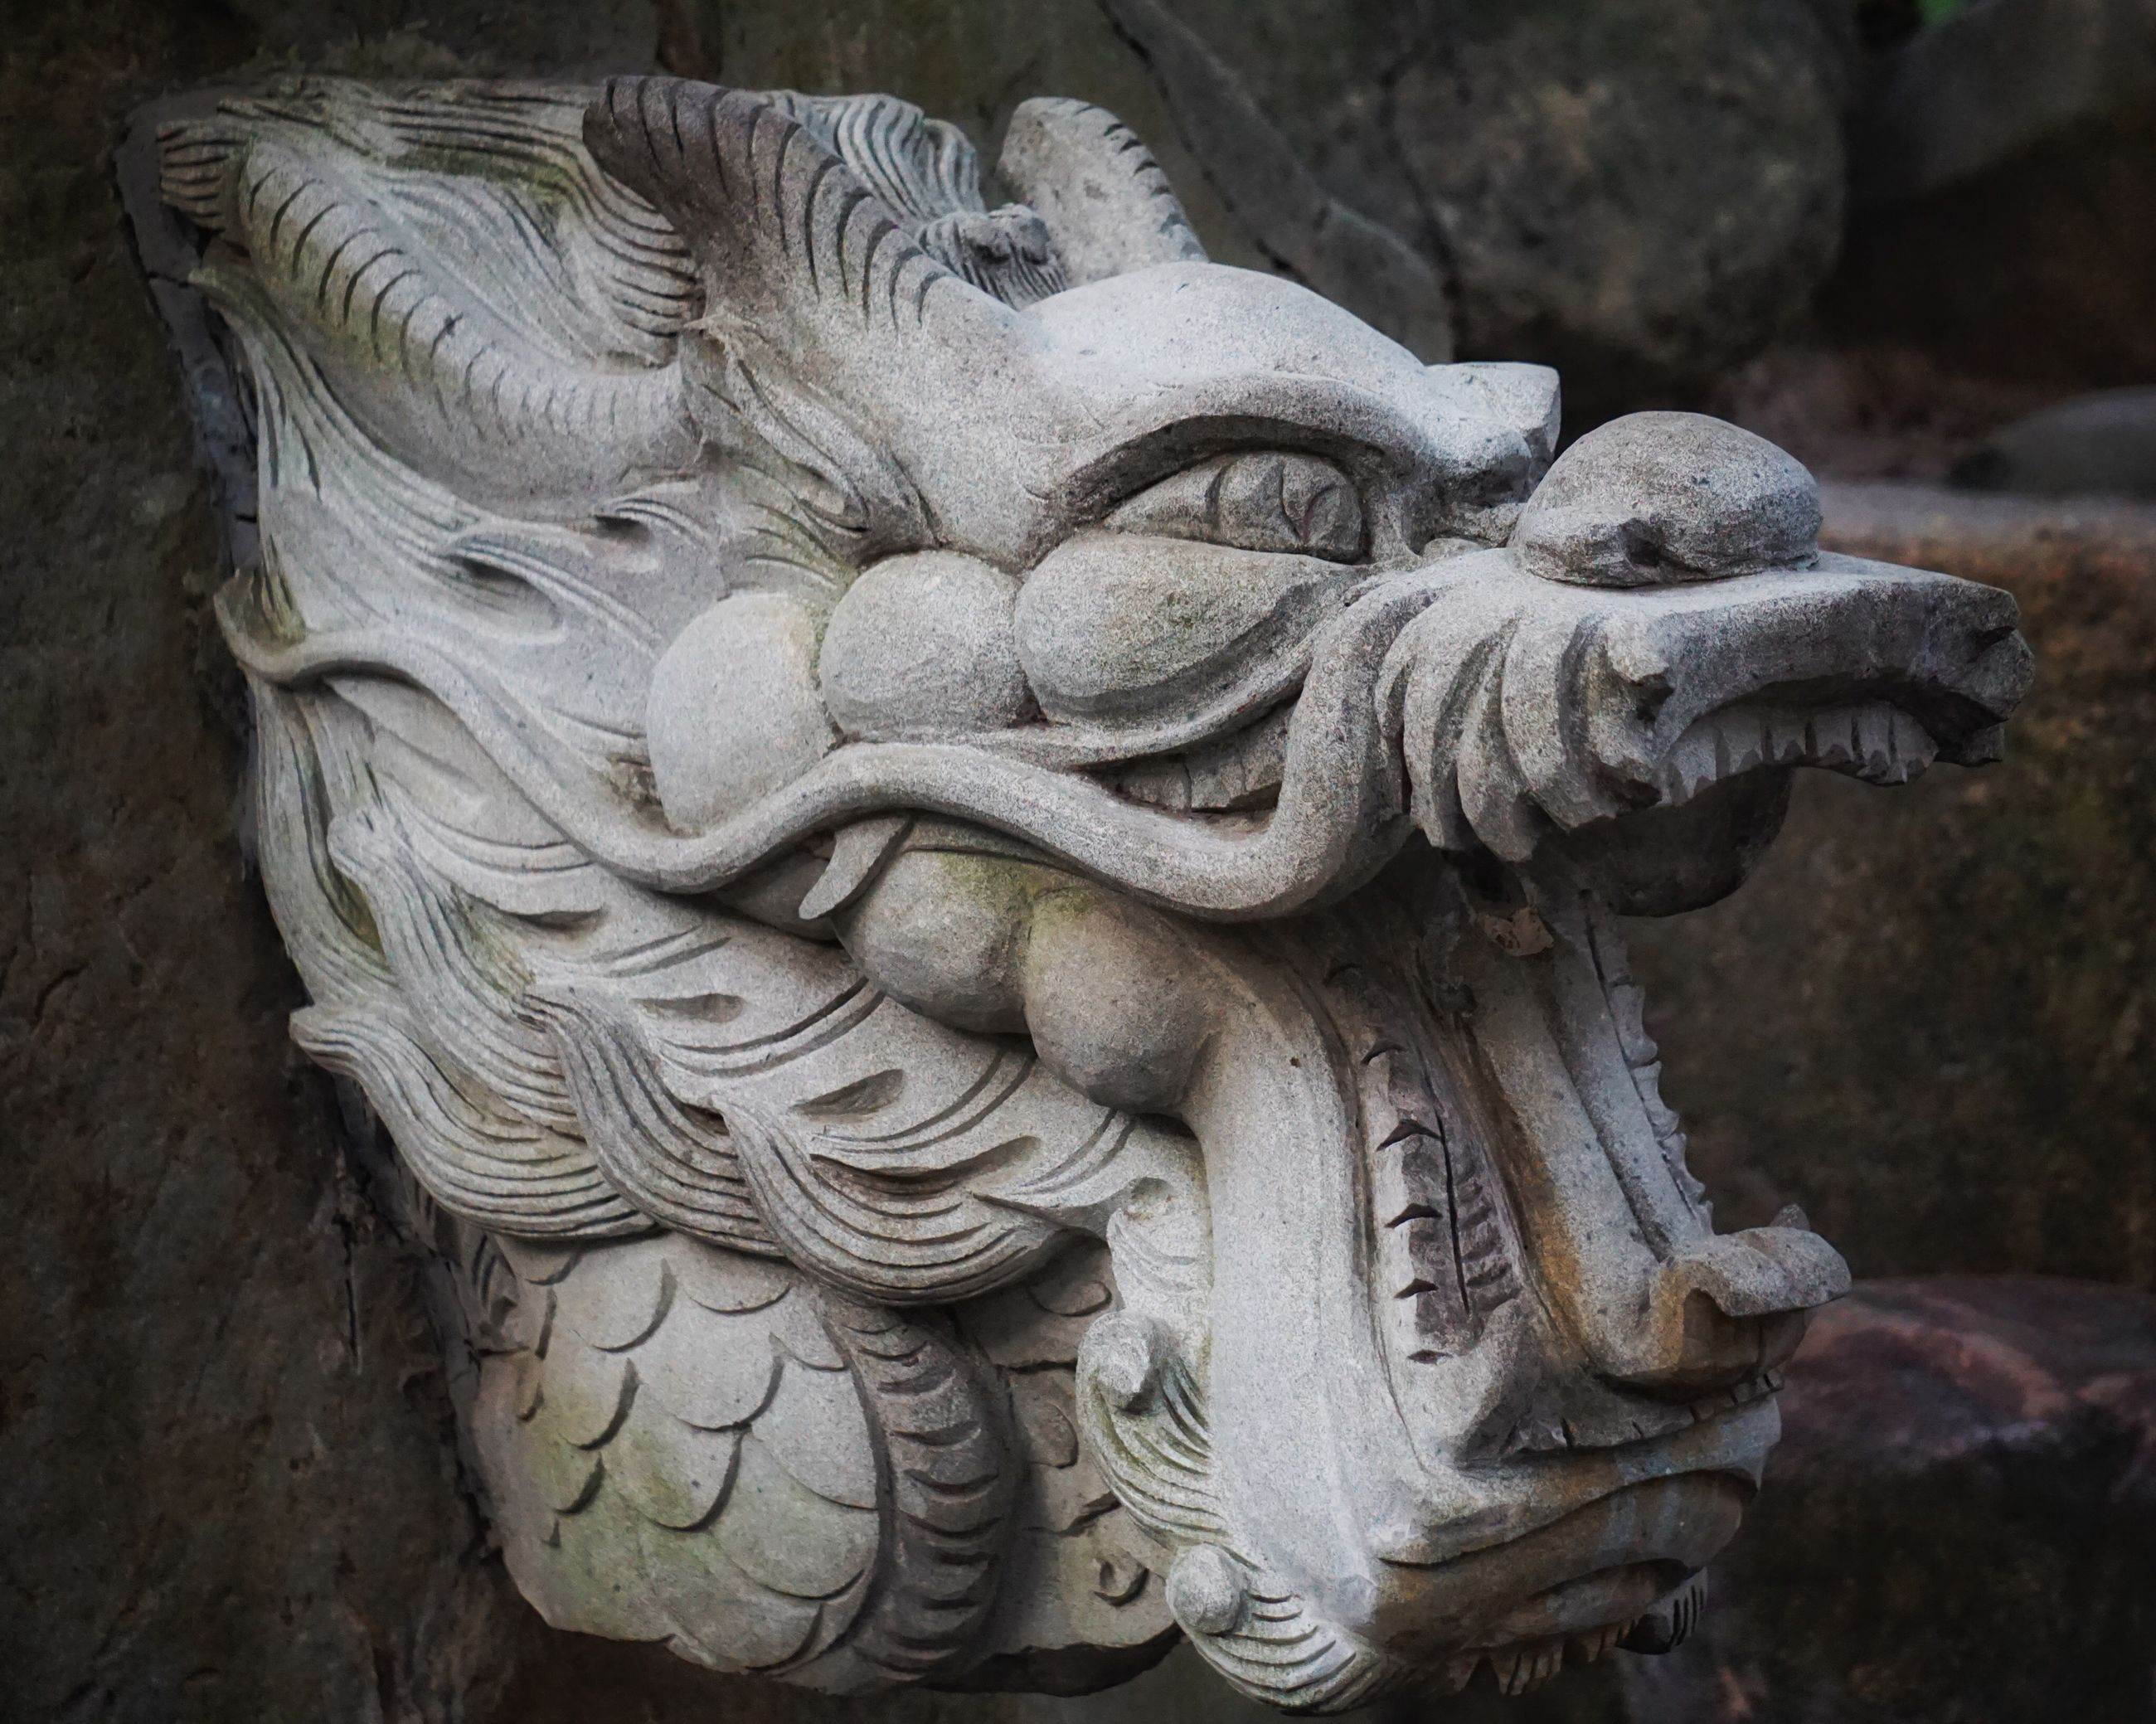 art, creativity, statue, sculpture, carving - craft product, close-up, craft, ornate, design, stone material, no people, carving, buddha, day, the past, focus on foreground